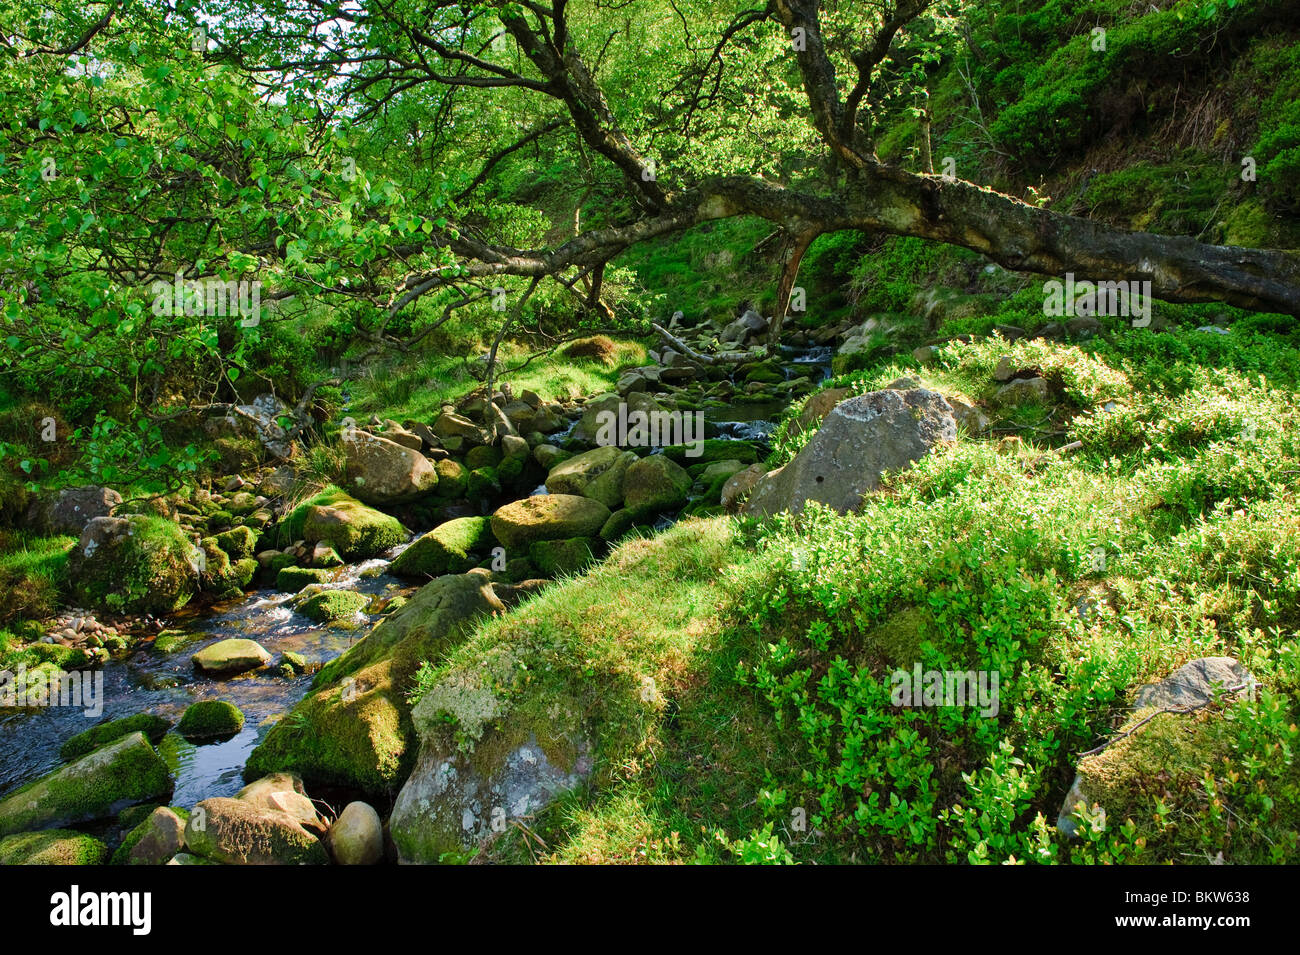 Black Clough on the slopes of Hawthornthwaite Fell in the Forest of Bowland, Lancashire, England - Stock Image